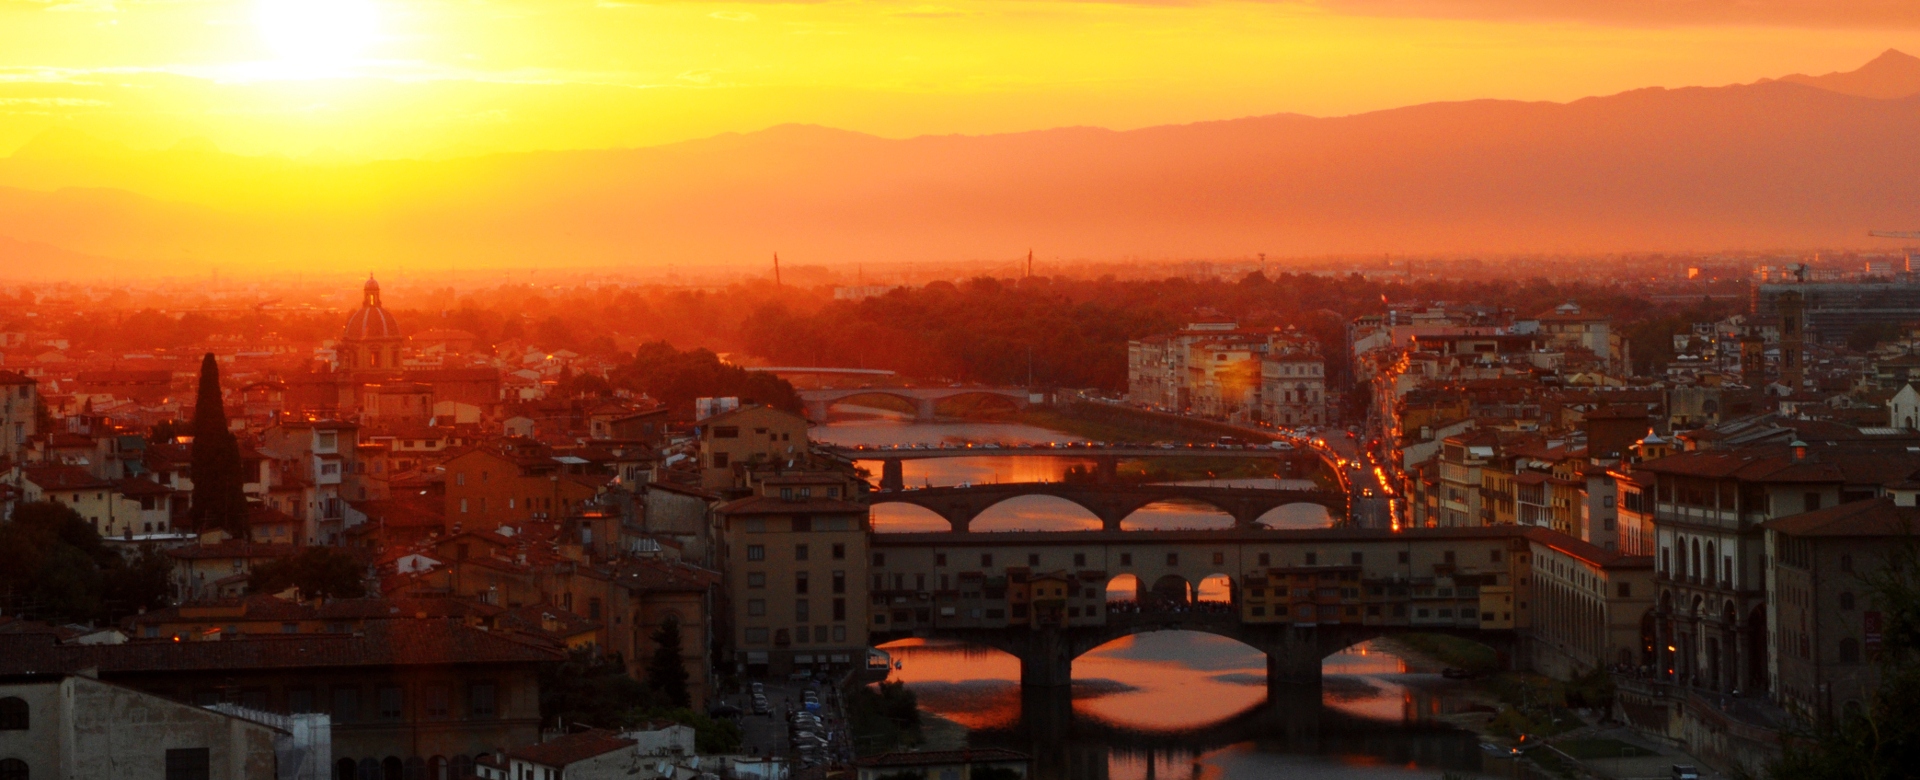 Idee per un weekend romantico a Firenze